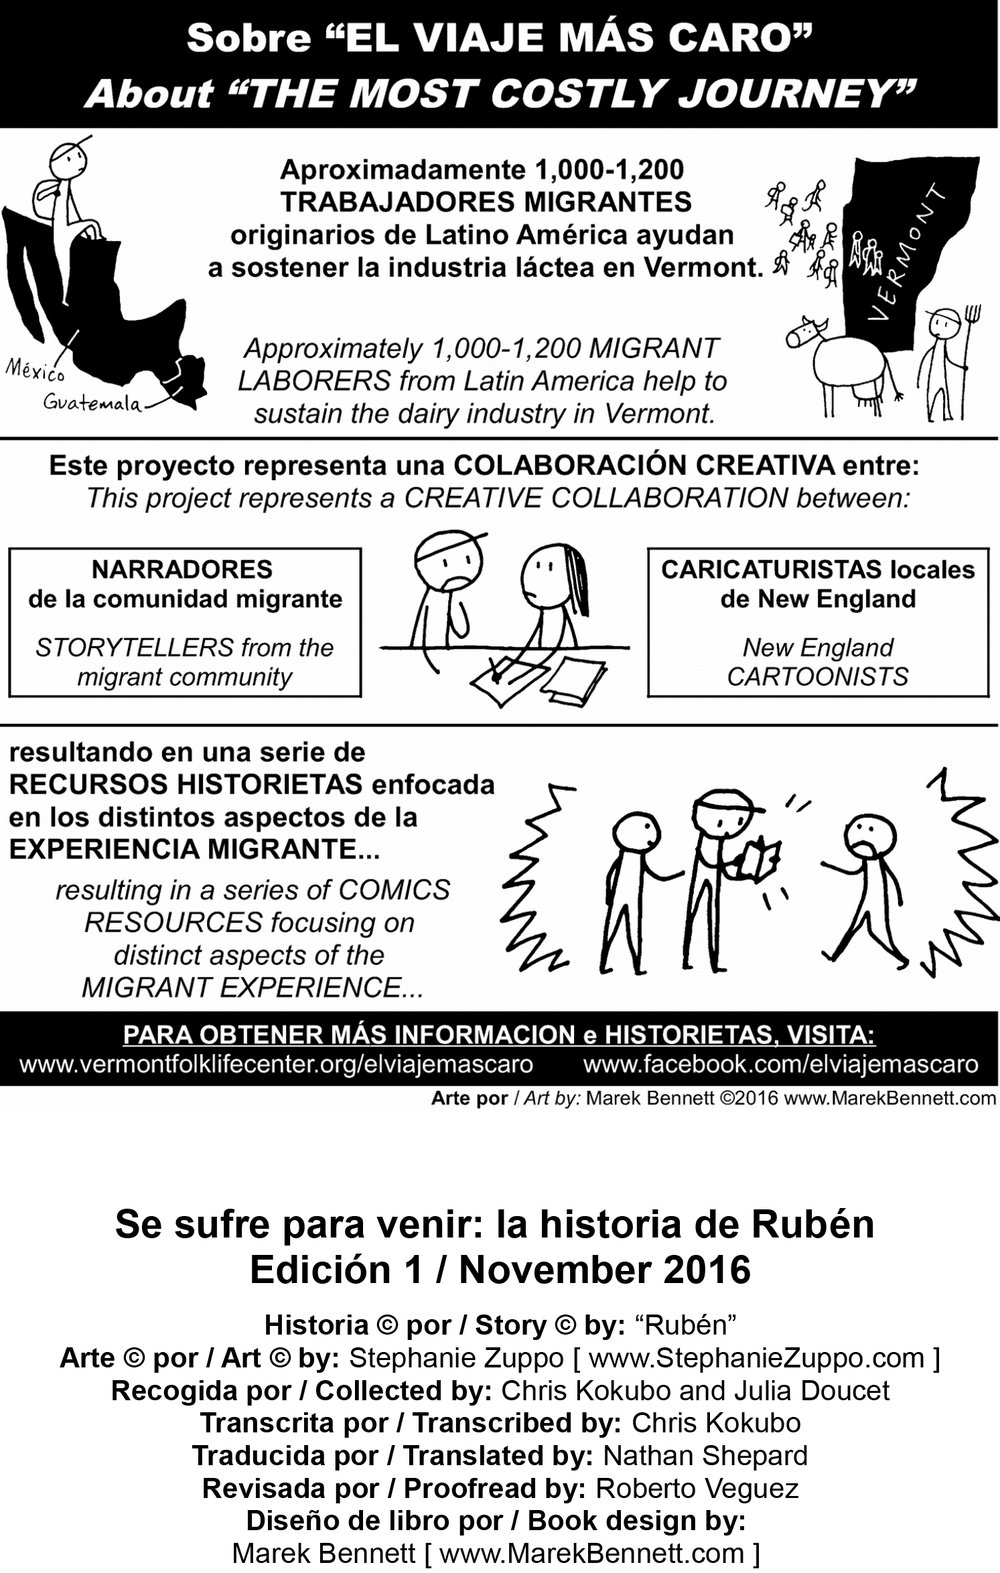 BOOKLET-161101_Ruben-Stephanie_Digest_ESP-2.jpg